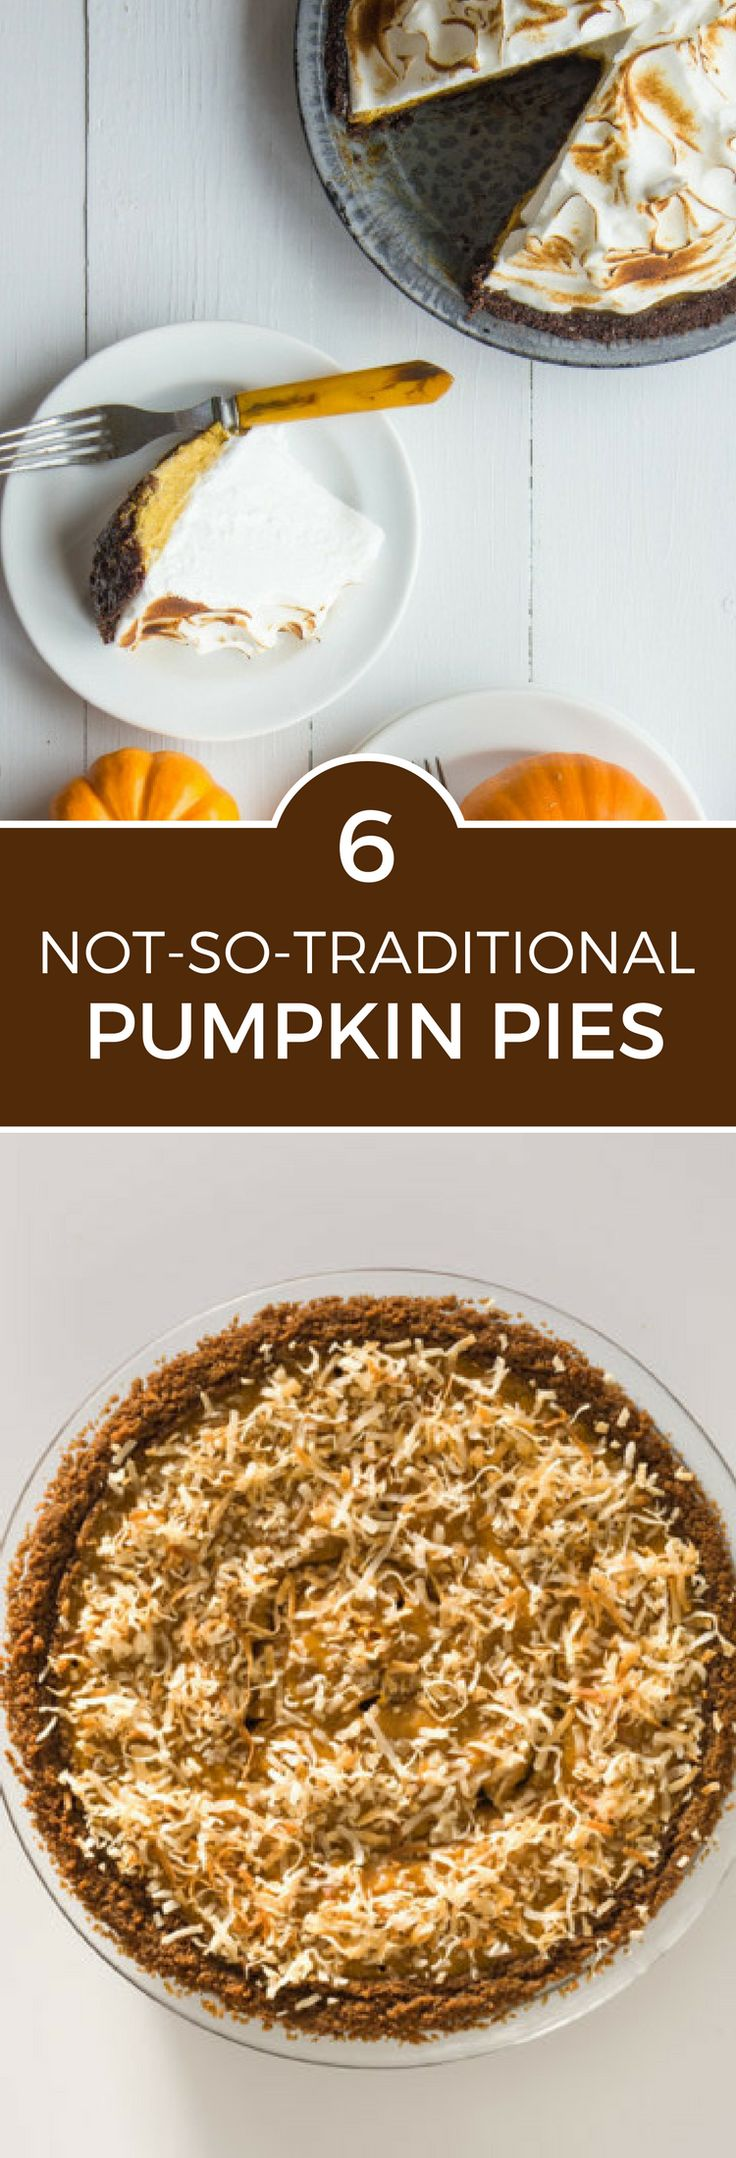 Pumpkin season is here! Change things up this year with these 6 twists on the traditional pumpkin pie. You'll never look back!